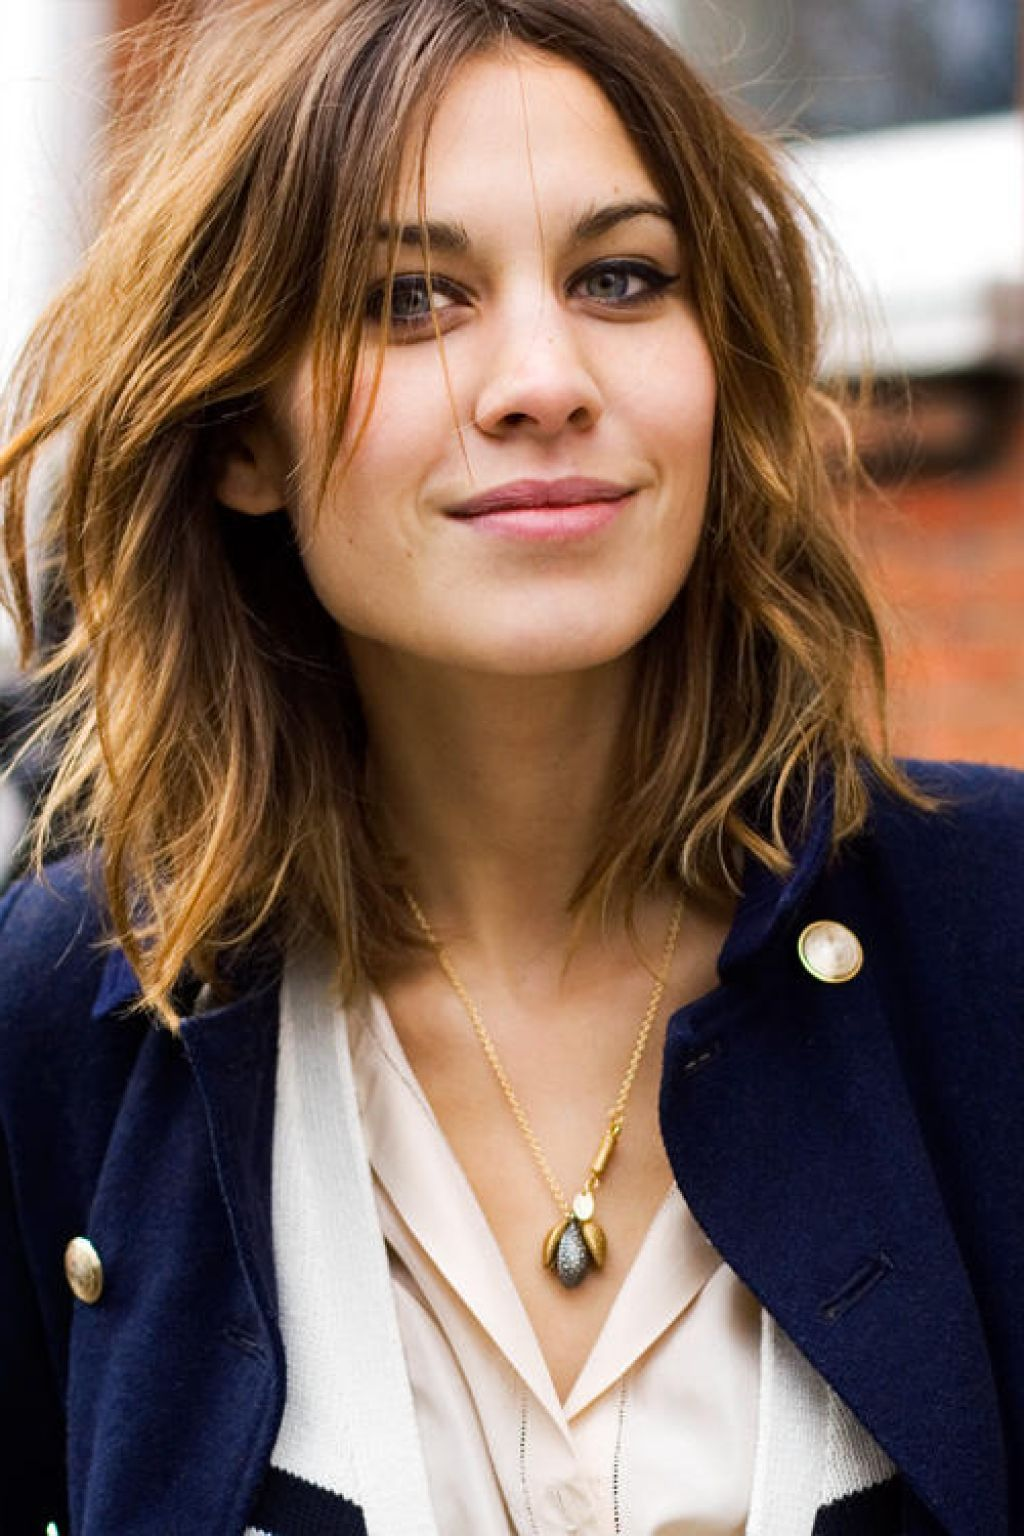 lob hairstyles with bangs Google Search crop